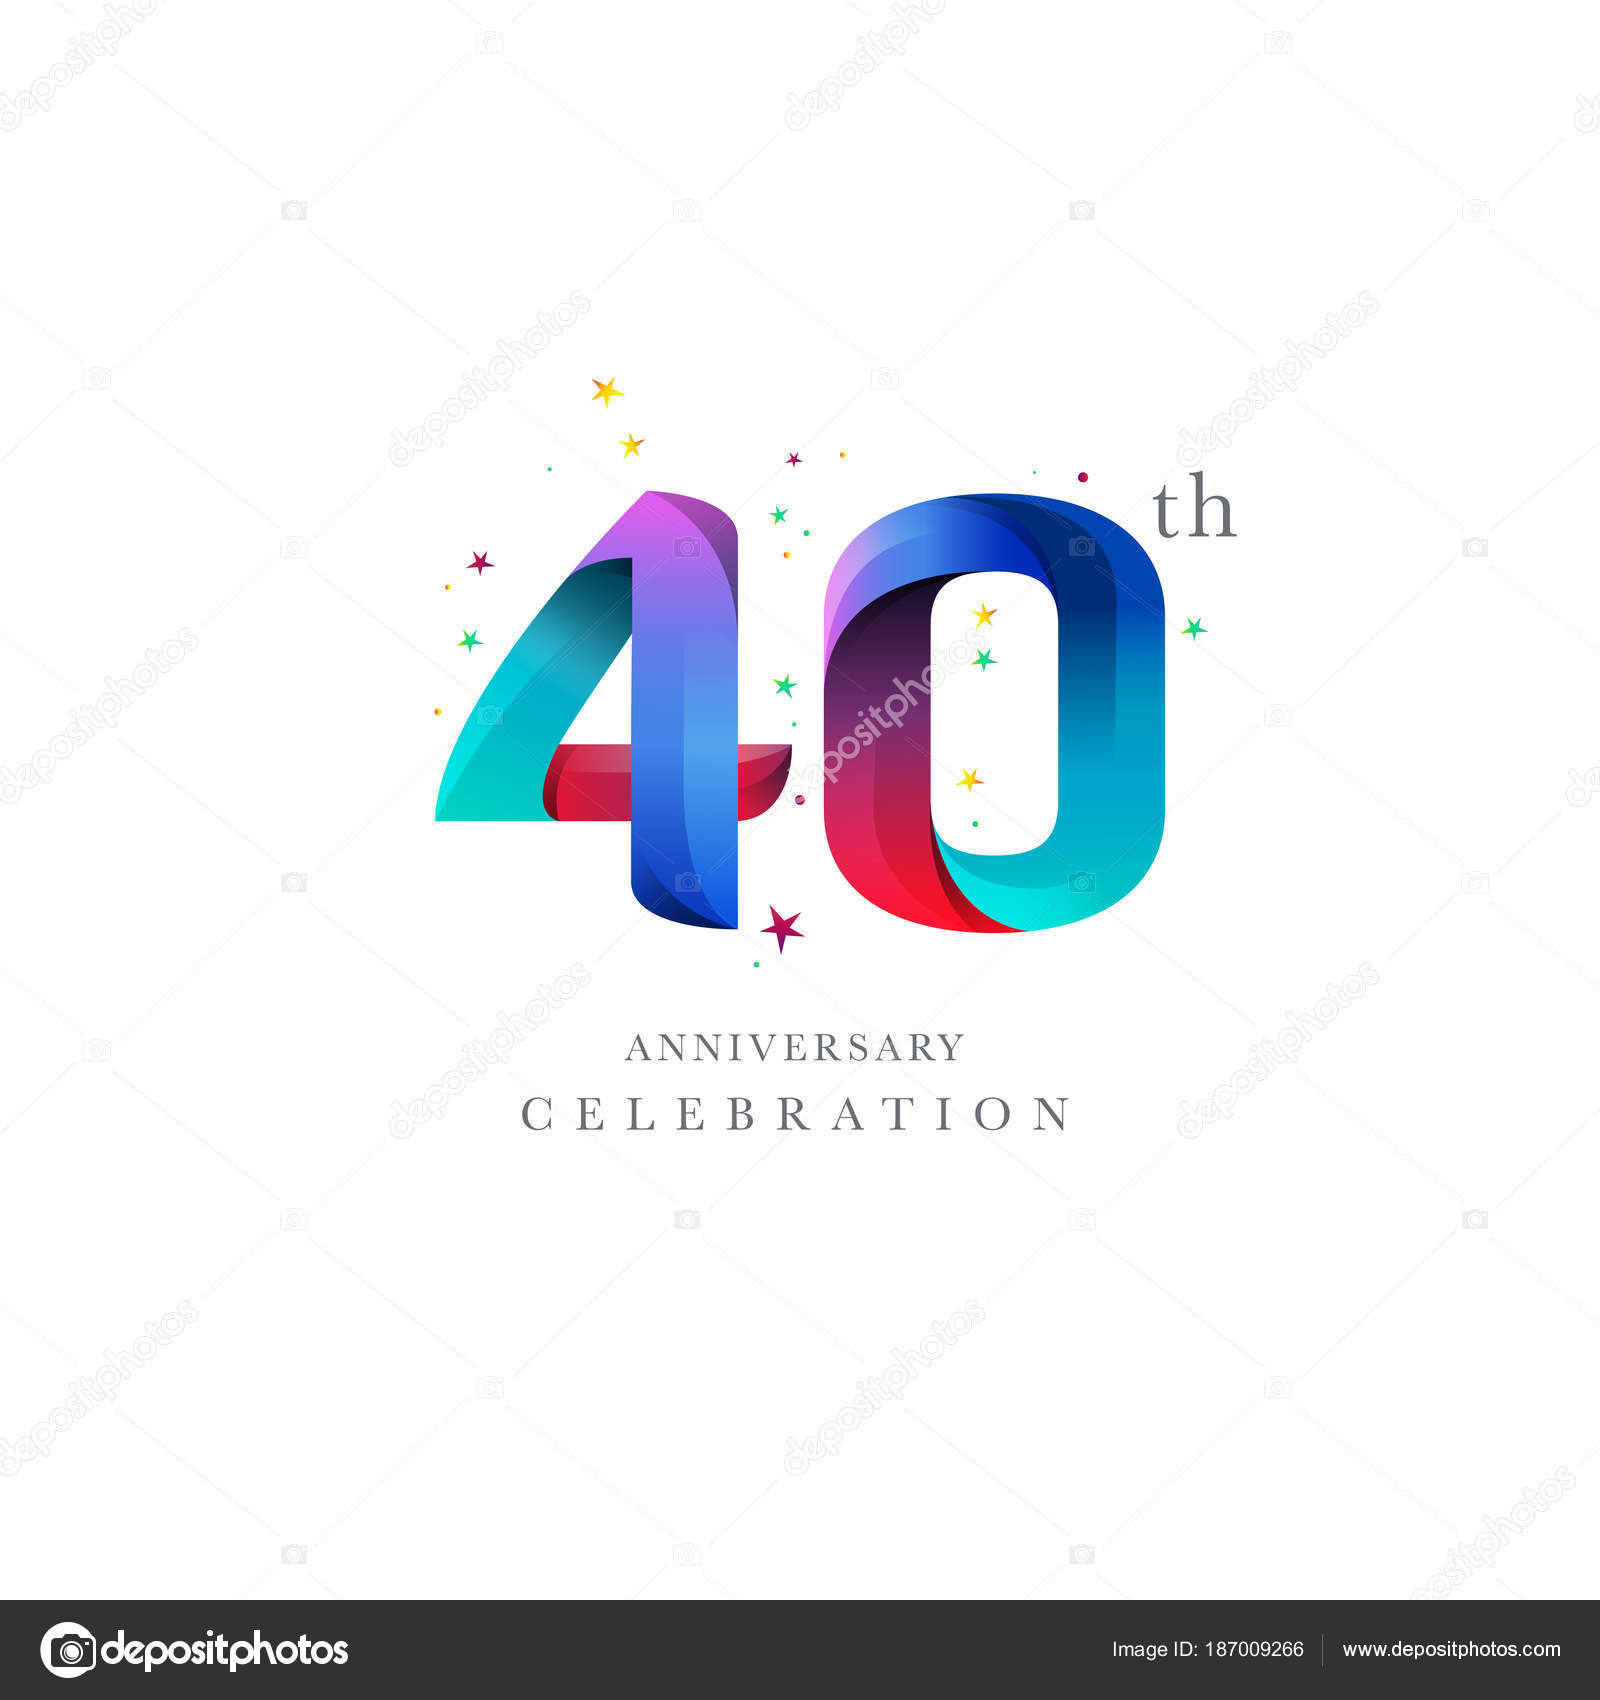 40th anniversary logo design